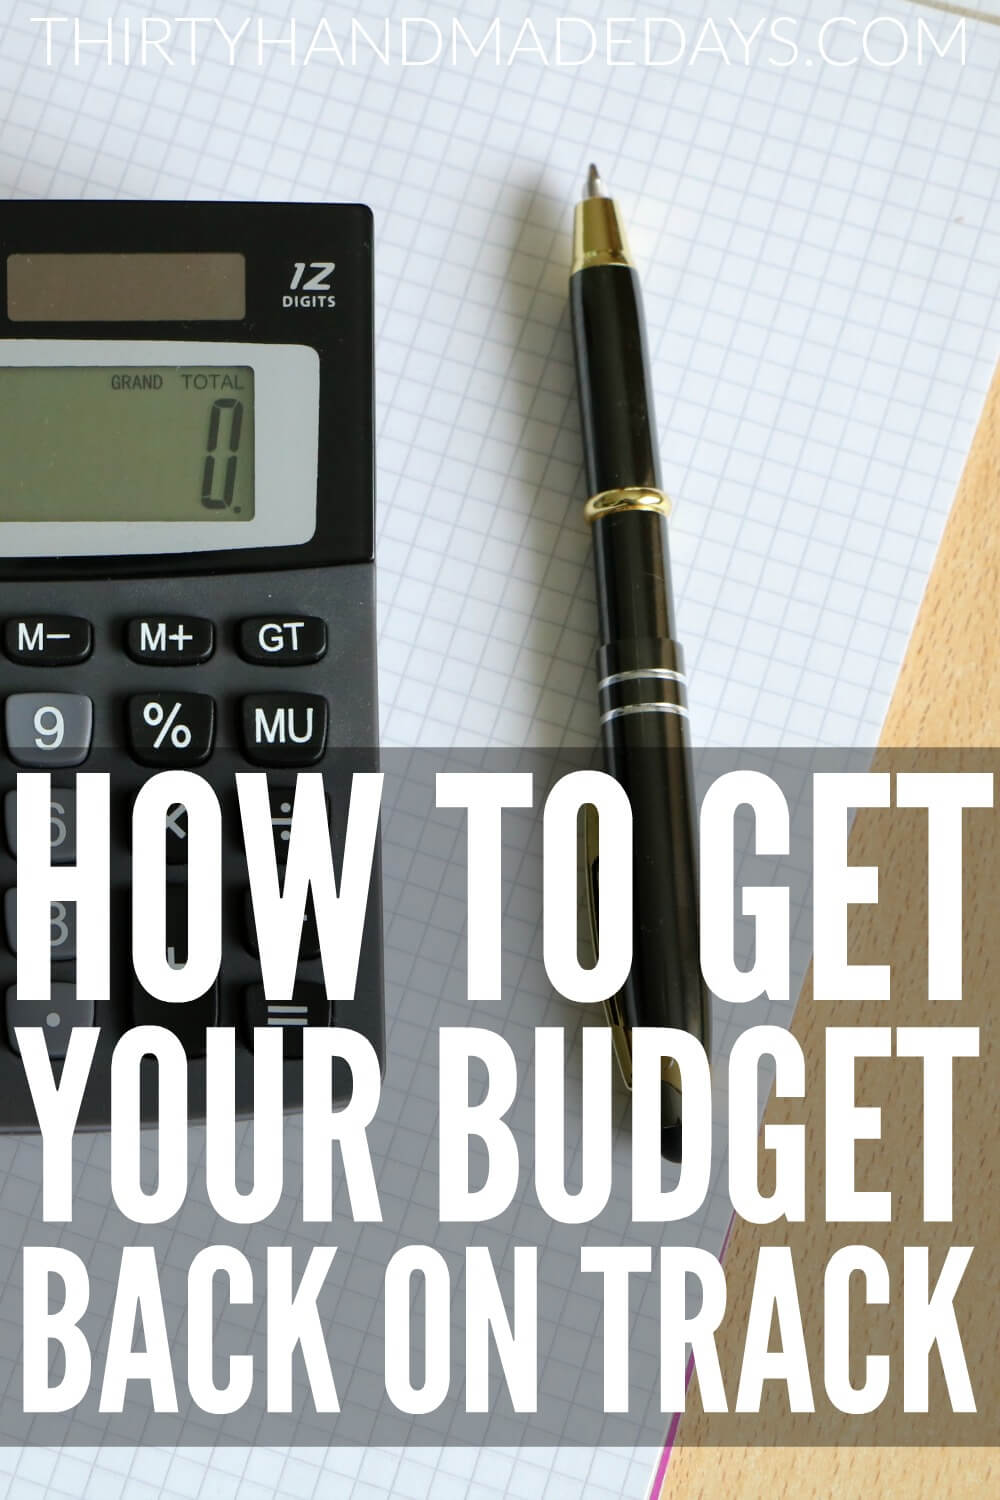 How to get your budget back on track - follow these tips